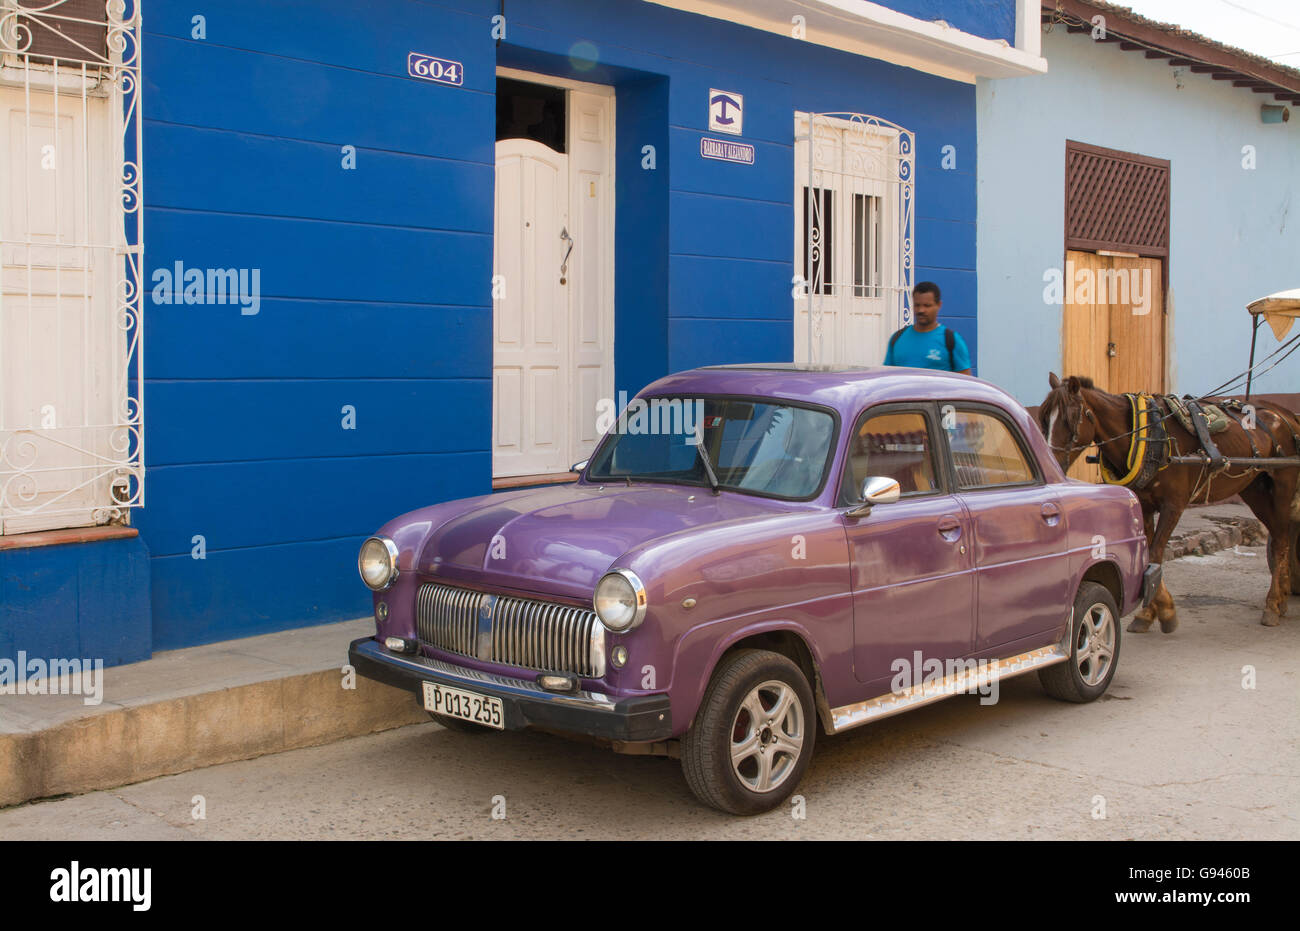 Trinidad Cuba old car on street of second oldest city in Cuba  in colonial town - Stock Image